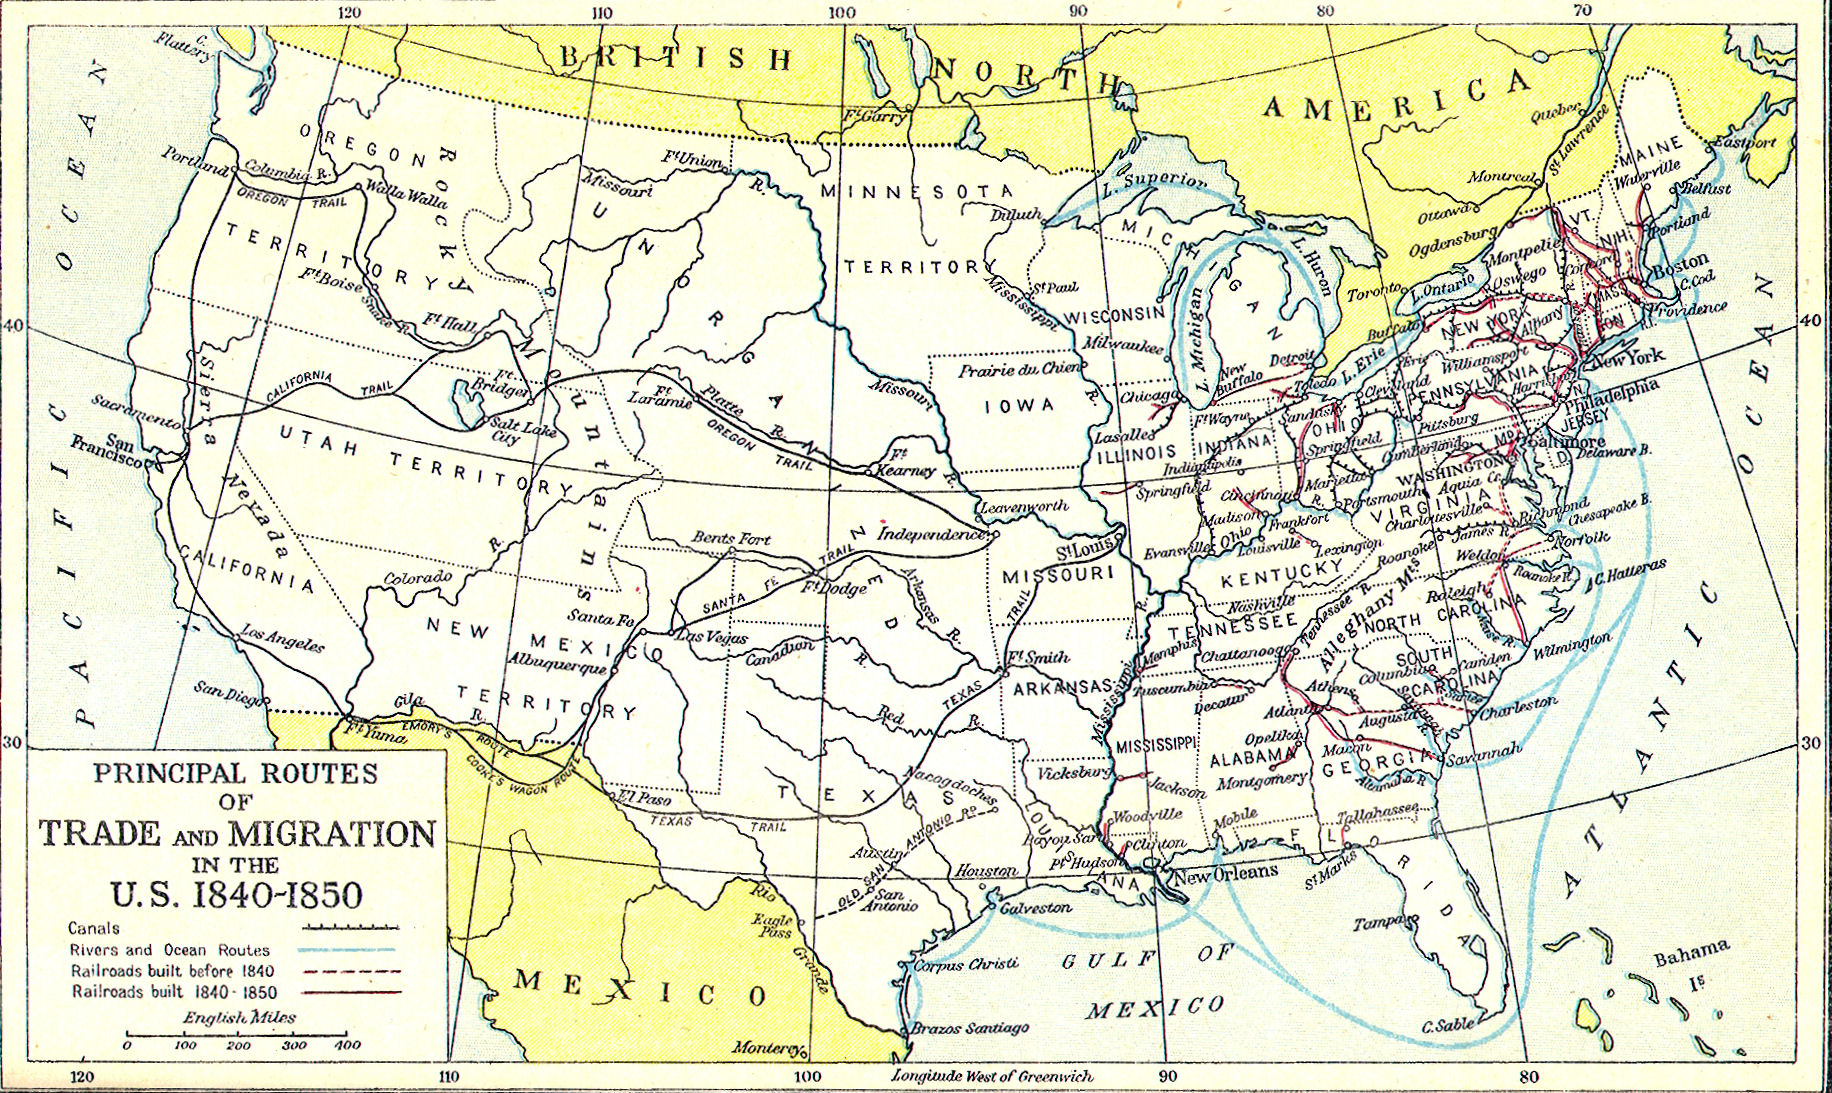 S Pennsylvania Maps FileUnited States Central Map  To - Map of us states in 1800s